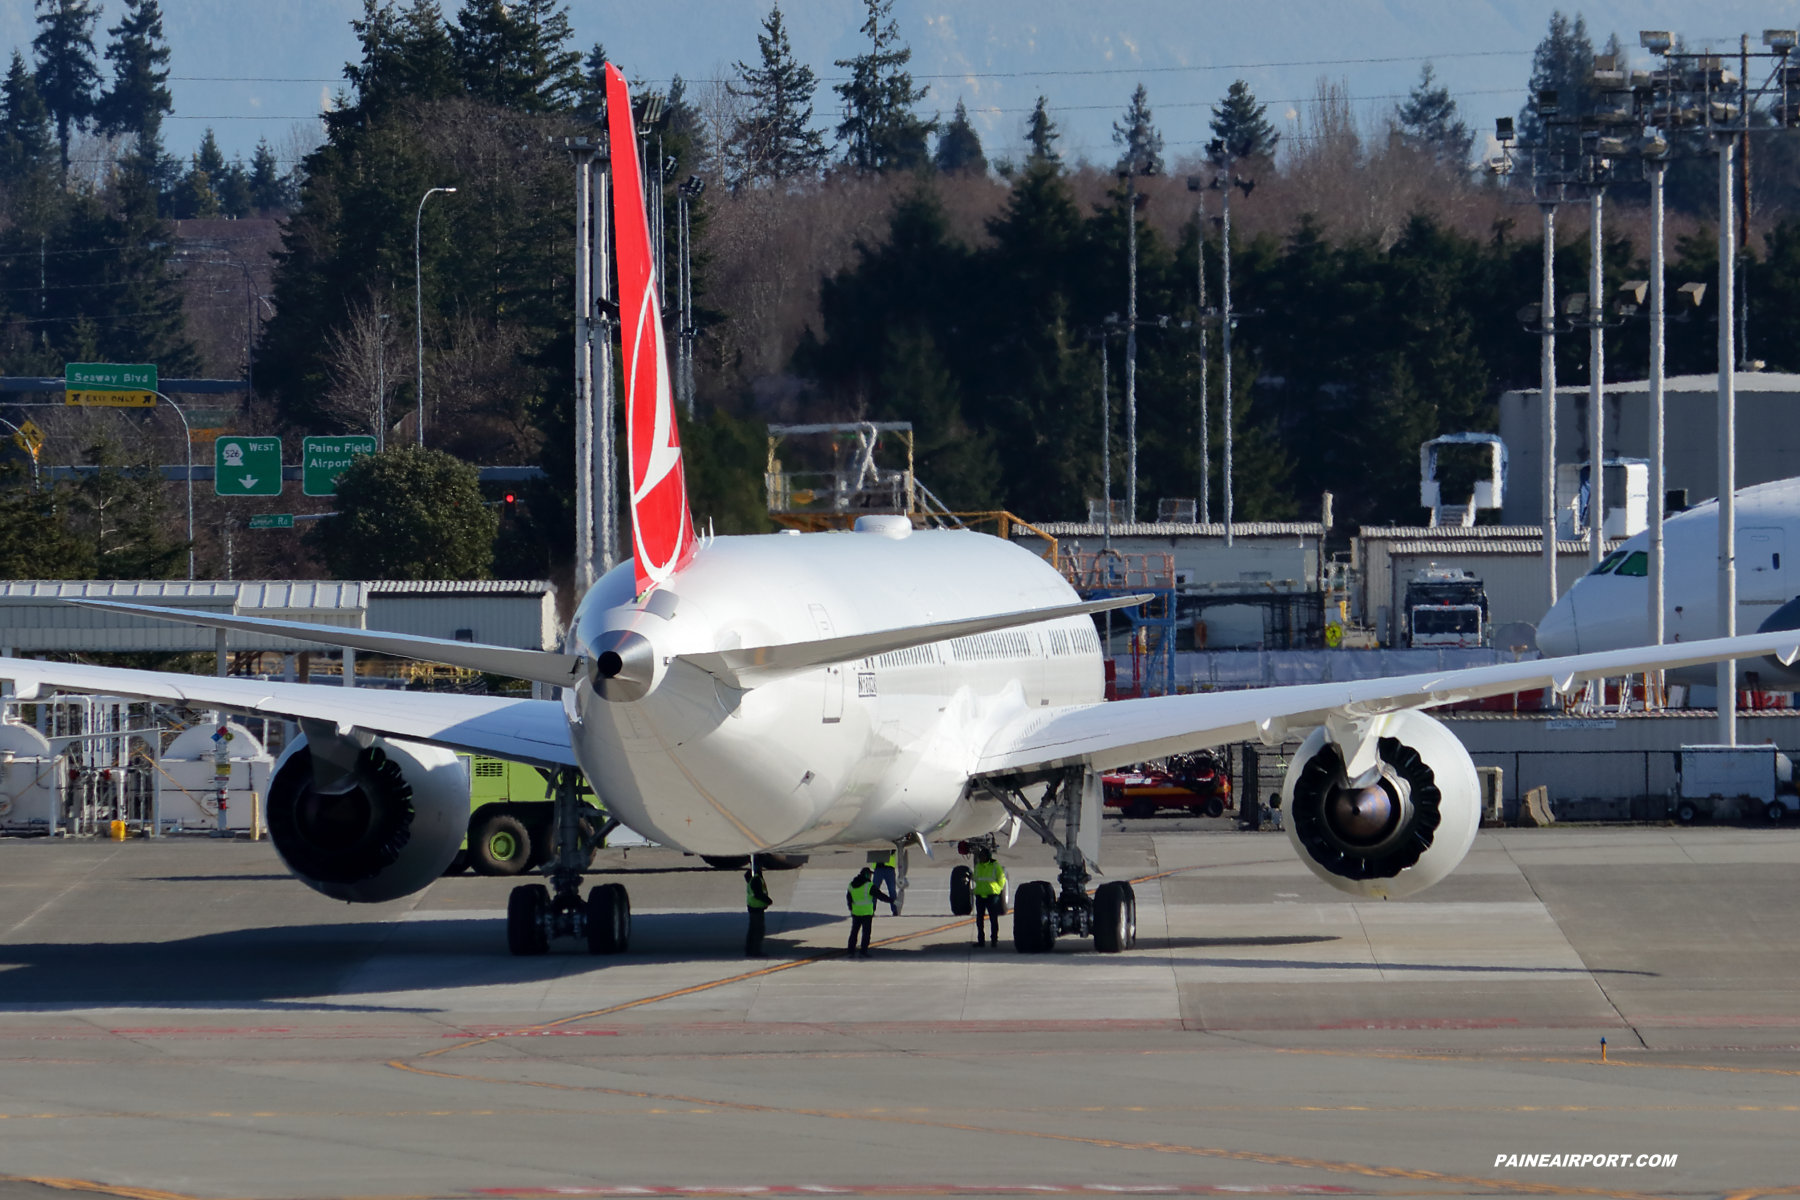 Turkish Airlines 787-9 at Paine Field